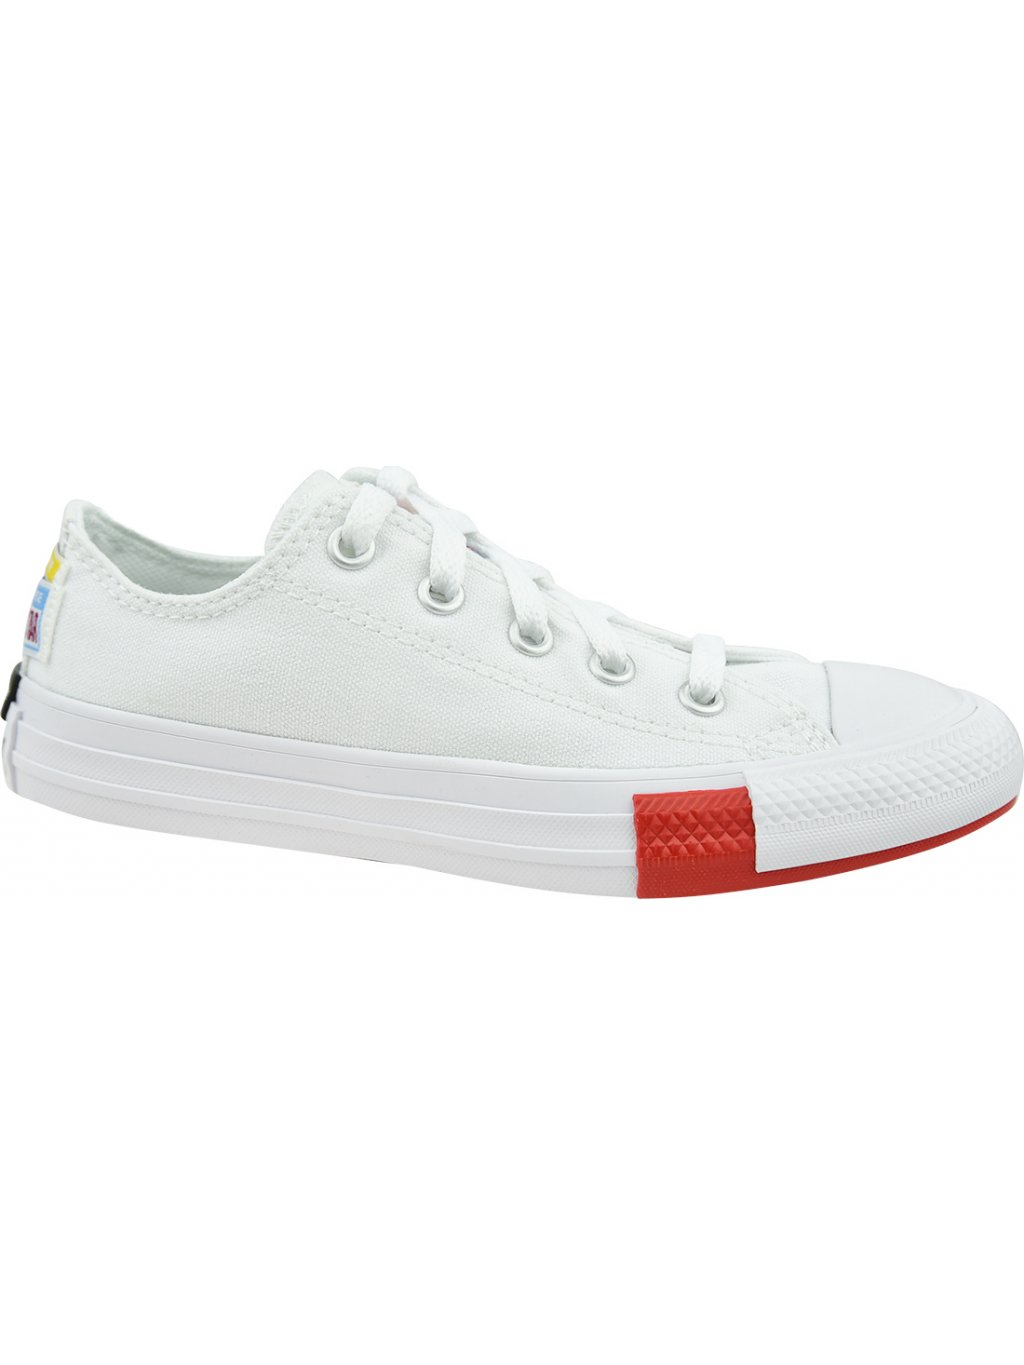 CONVERSE CHUCK TAYLOR ALL STAR JR 366993C